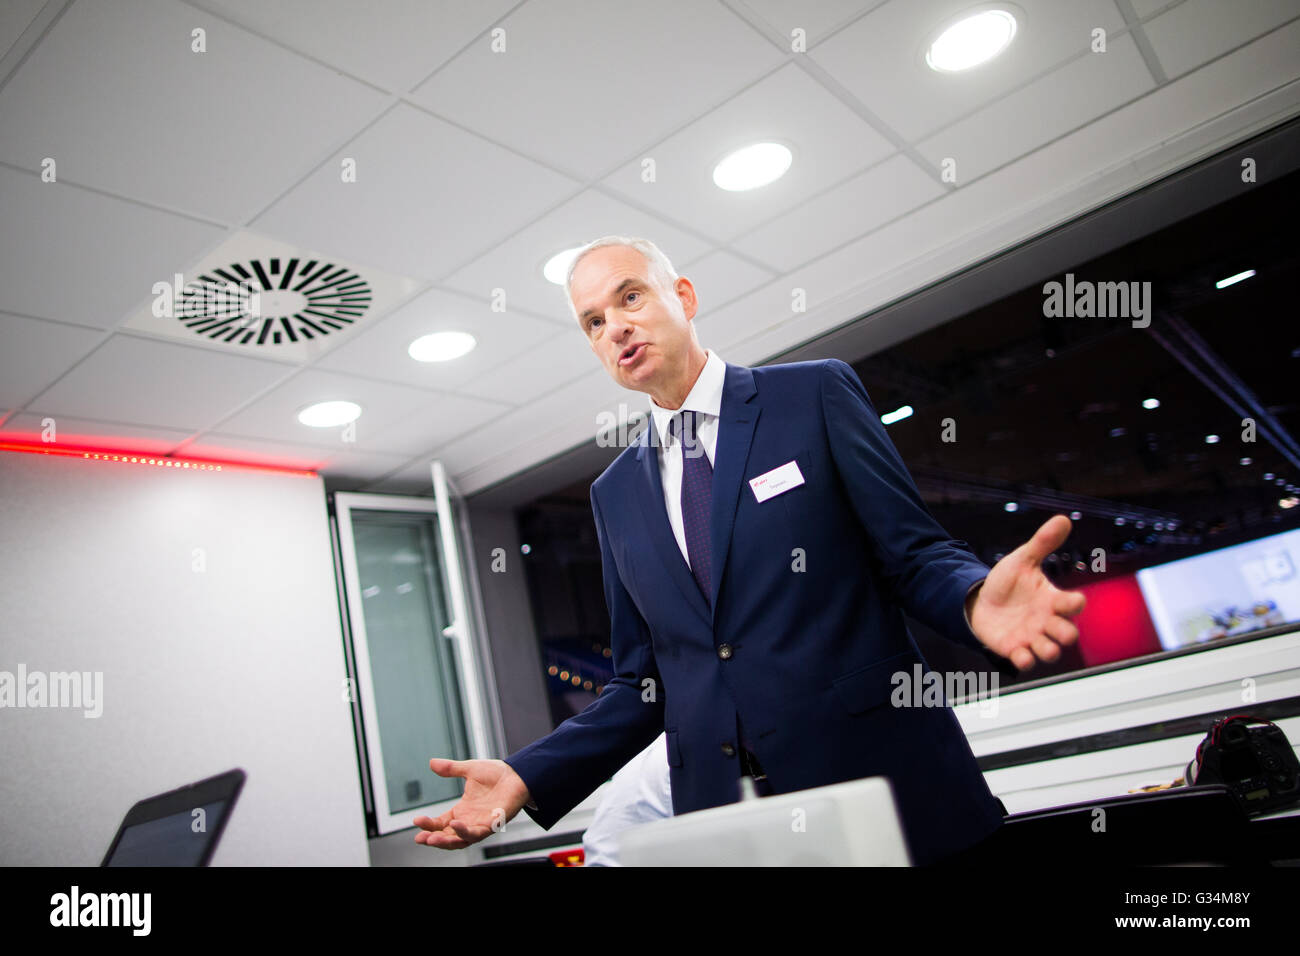 Essen, Germany. 8th June, 2016. Johannes Teyssen, CEO of energy comapny eon, talks to journalists at the company's Stock Photo